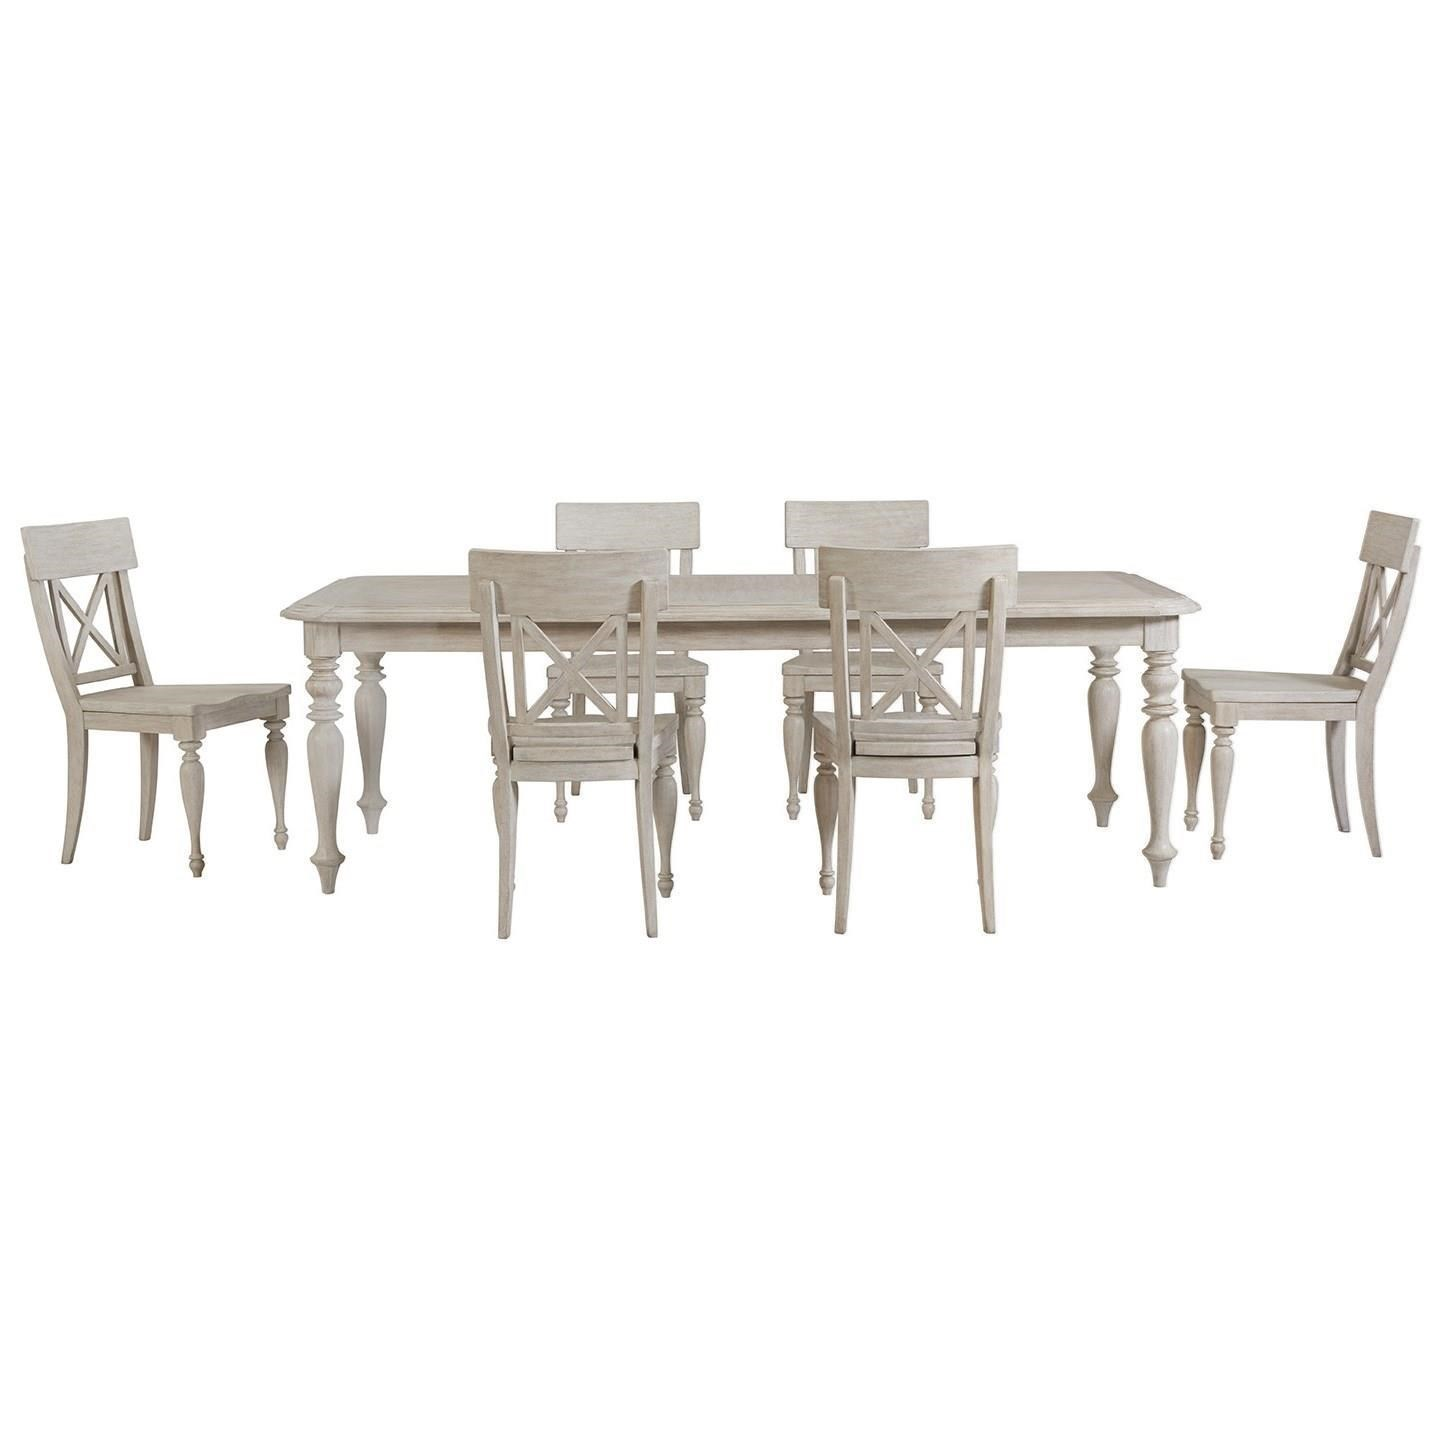 Stupendous Charleston Retreat Cottage 7 Piece Dining Table And Chair Set By Riverside Furniture At Furniture Barn Interior Design Ideas Grebswwsoteloinfo